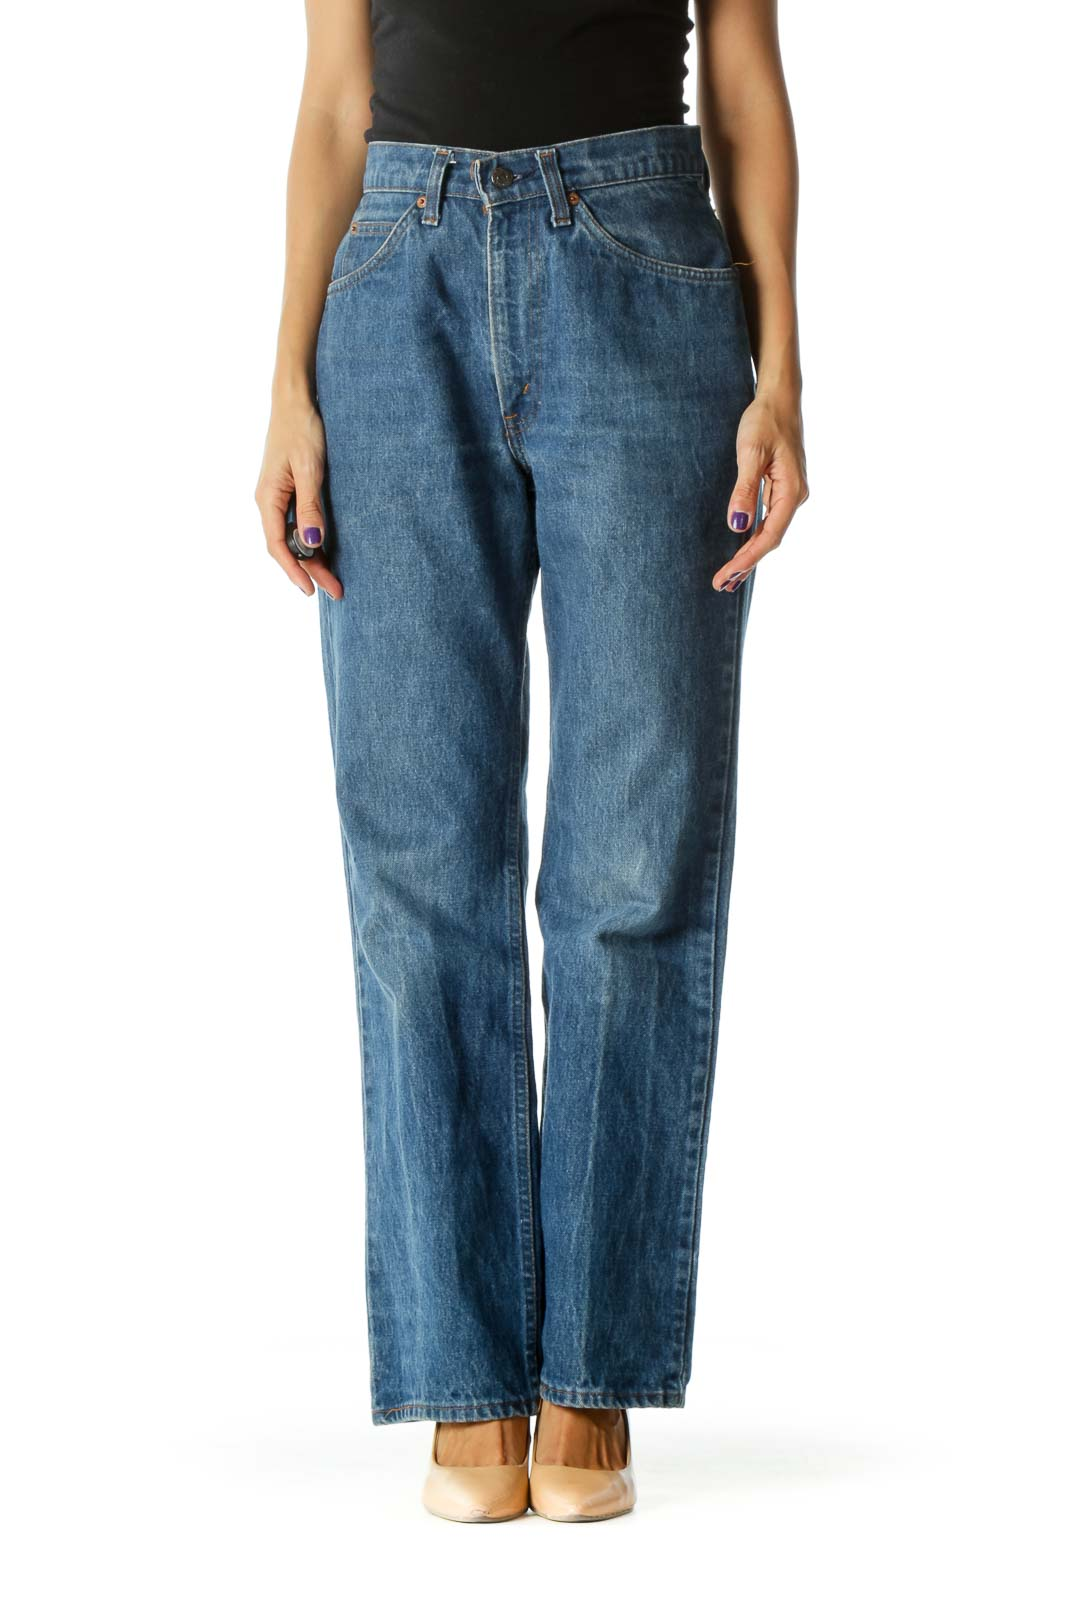 Blue Medium Wash 100% Cotton High-Rise Flared Denim Jeans